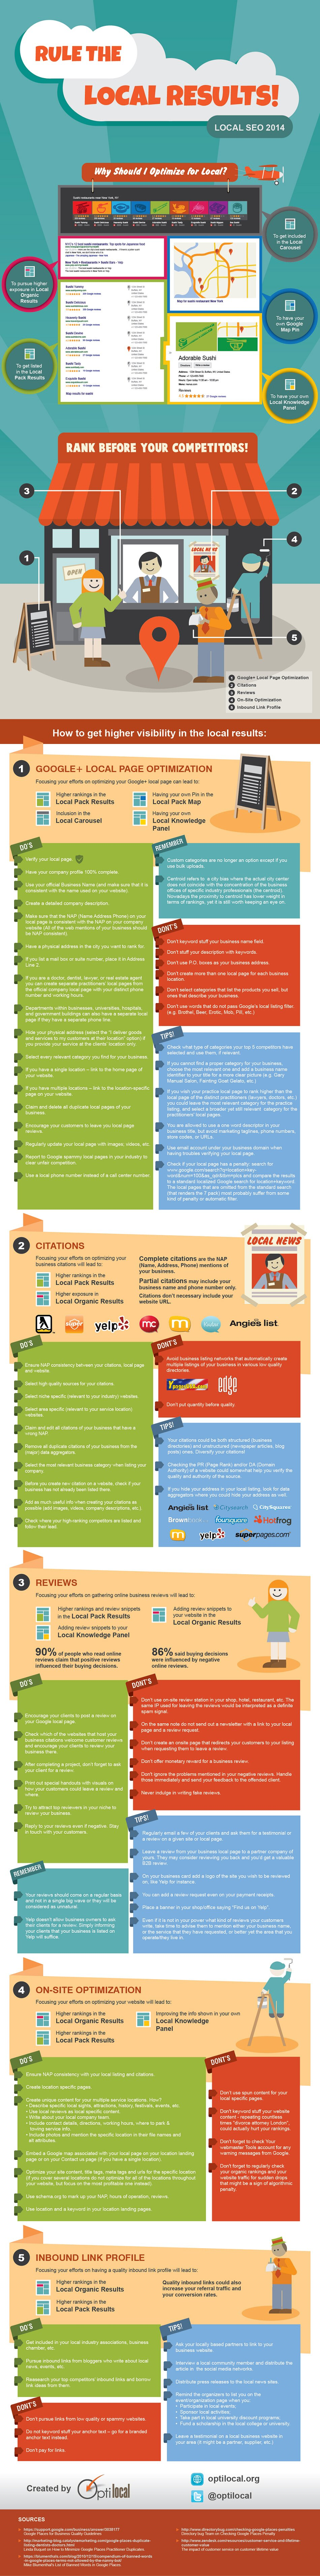 Optilocal Infographic Rule the Local Results v2 Rule The Local Results: An #Infographic